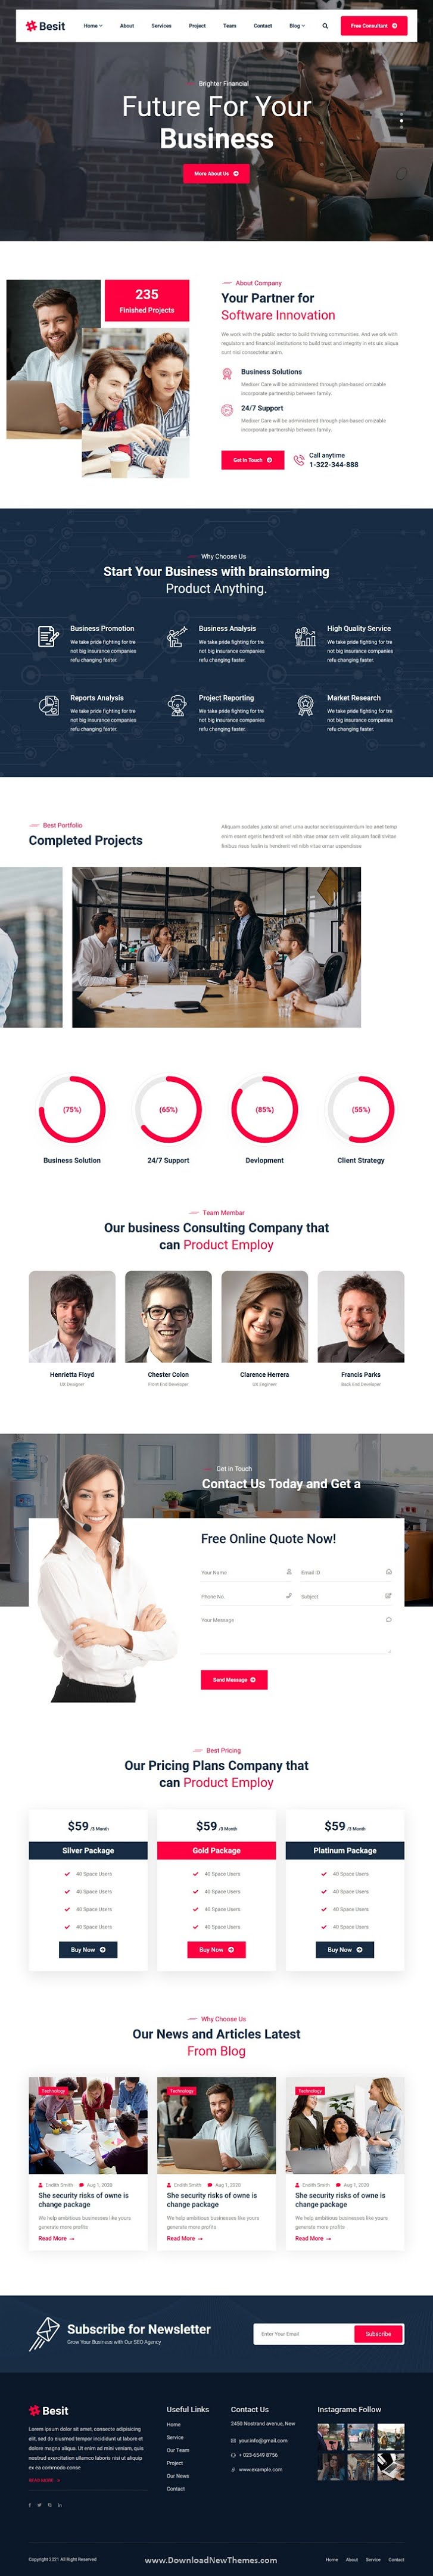 React Next Corporate One Page Template